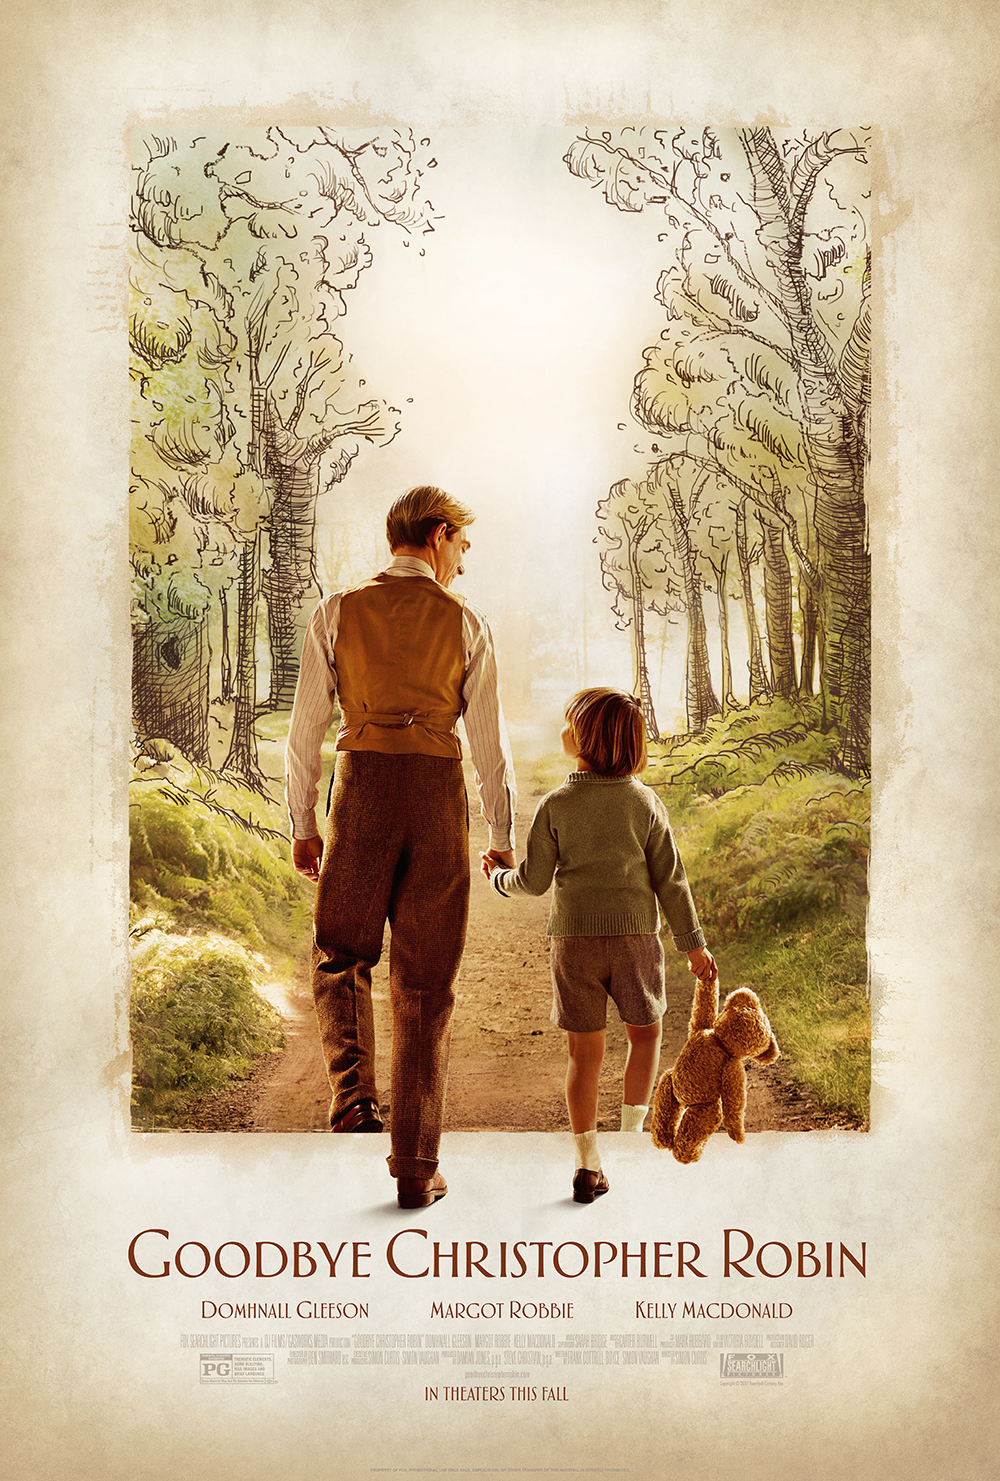 At the Movies: Goodbye Christopher Robin